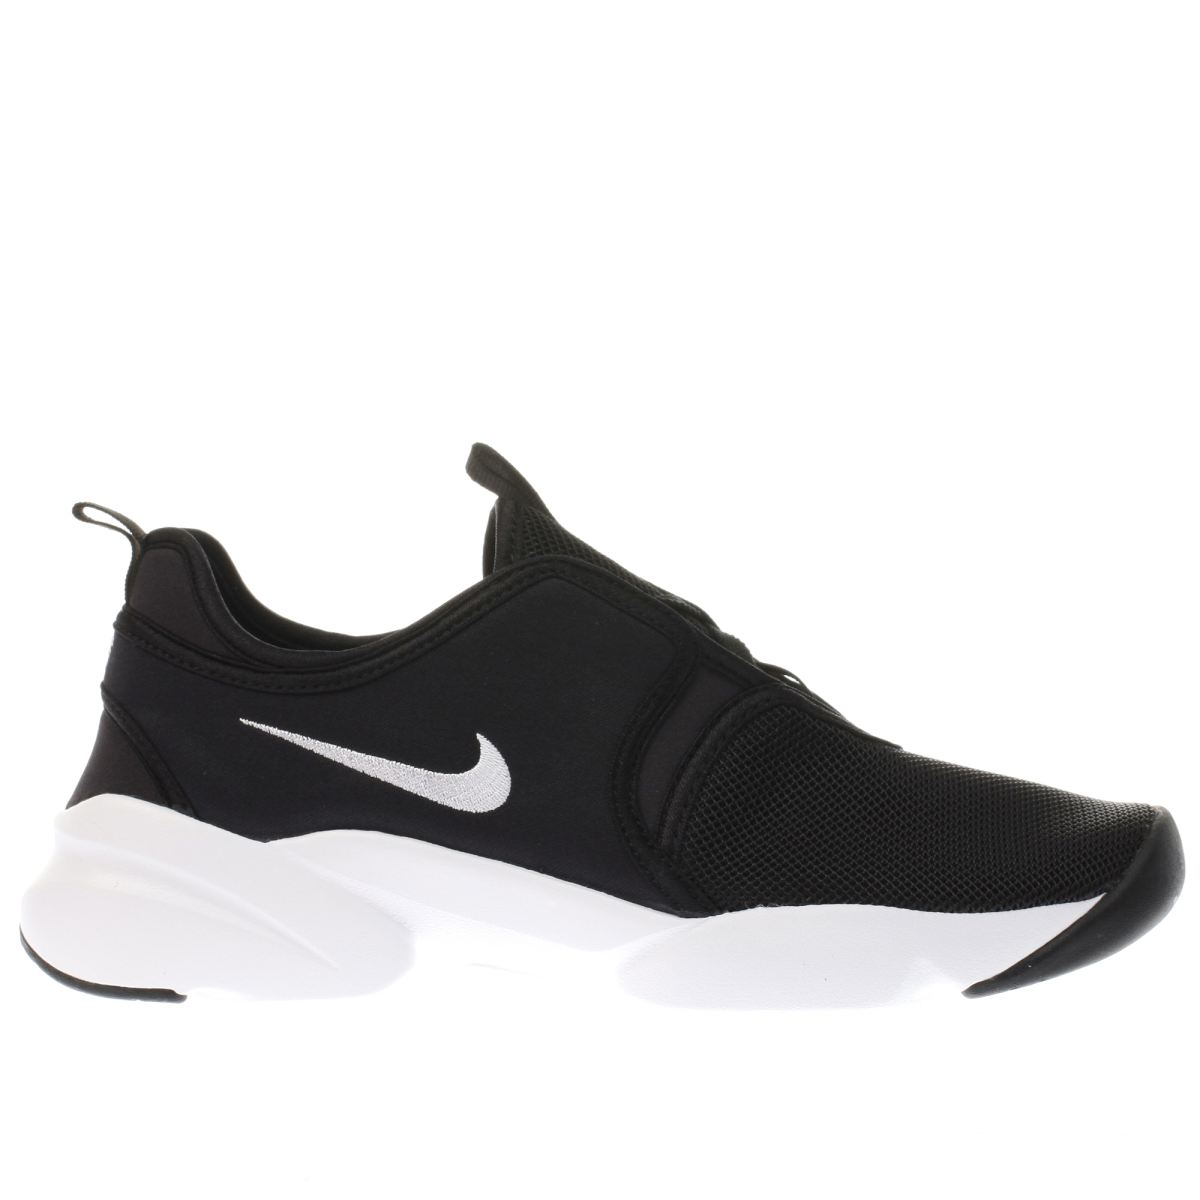 nike black & white loden trainers